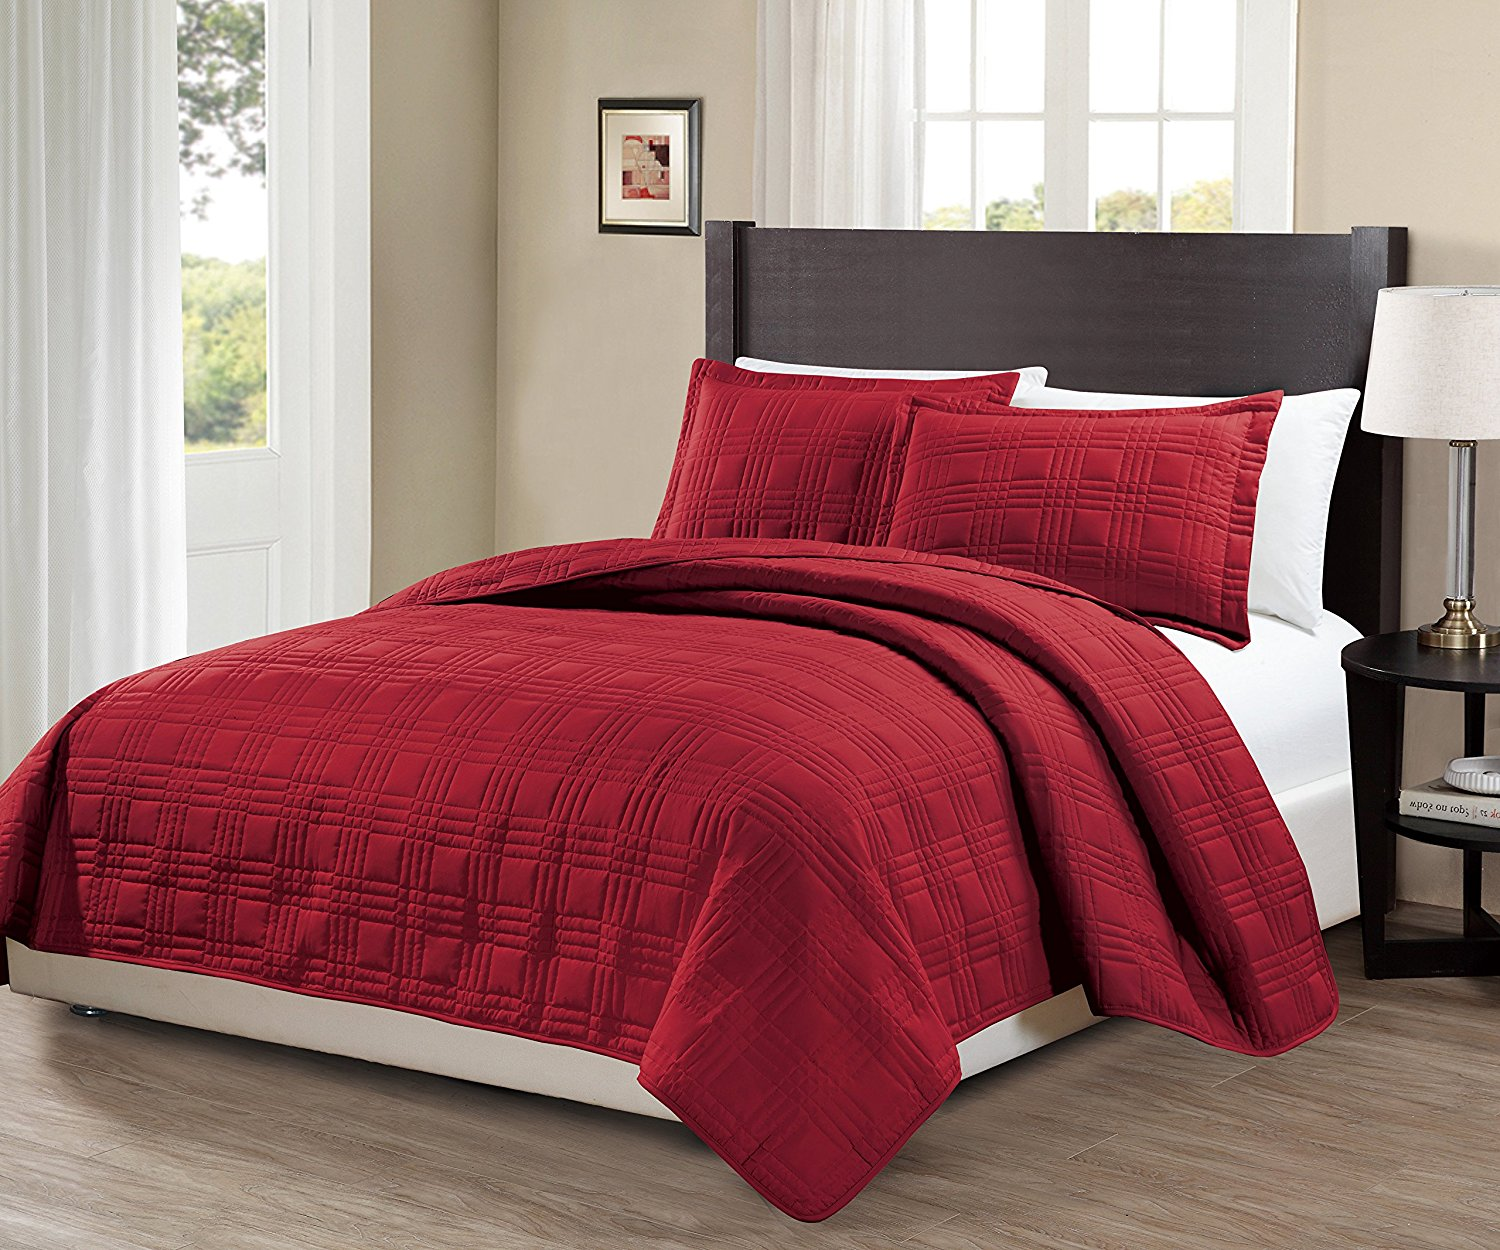 Fancy Collection 3pc Full/Queen Oversize Quilted Bedspread Coverlet Set Embroidery Solid Red New